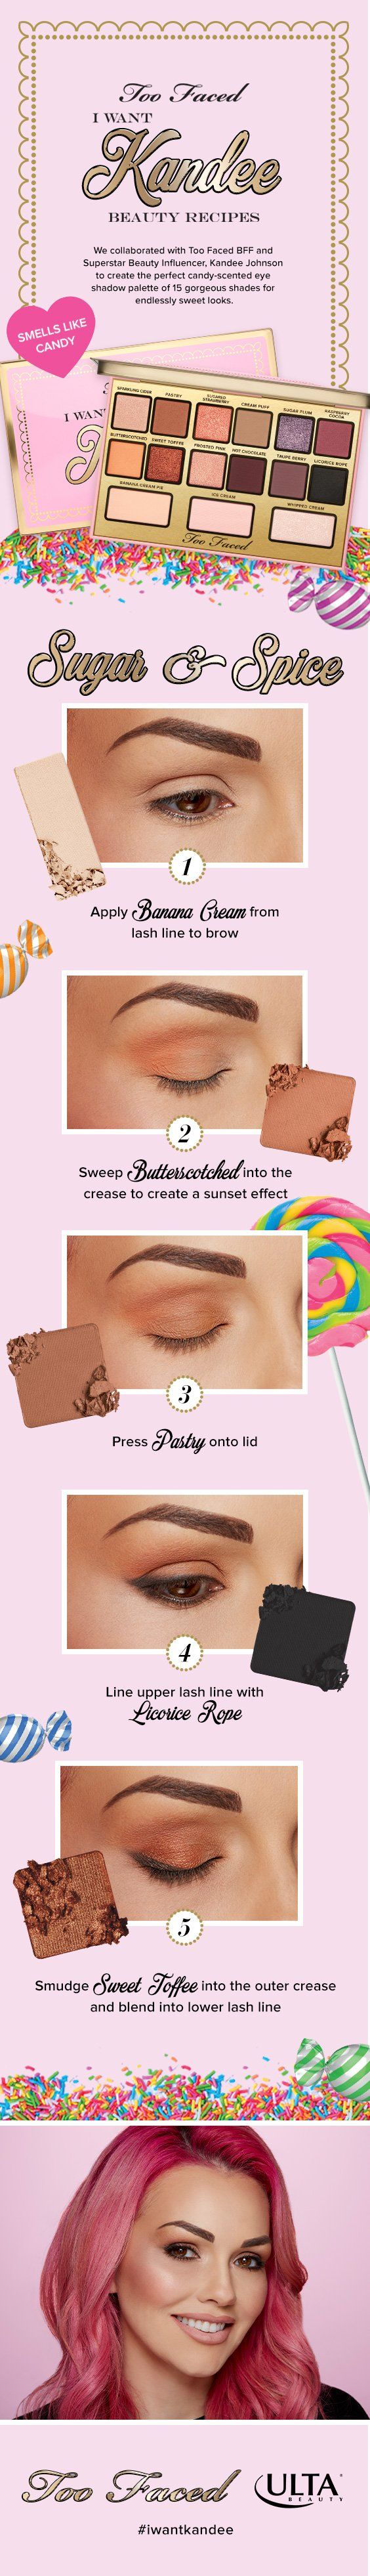 Sweet dreams do come true! Superstar beauty influencer Kandee Johnson has teamed up with Too Faced to bring you a new Ulta Beauty exclusive collection full of scent-sational, covetable treats.